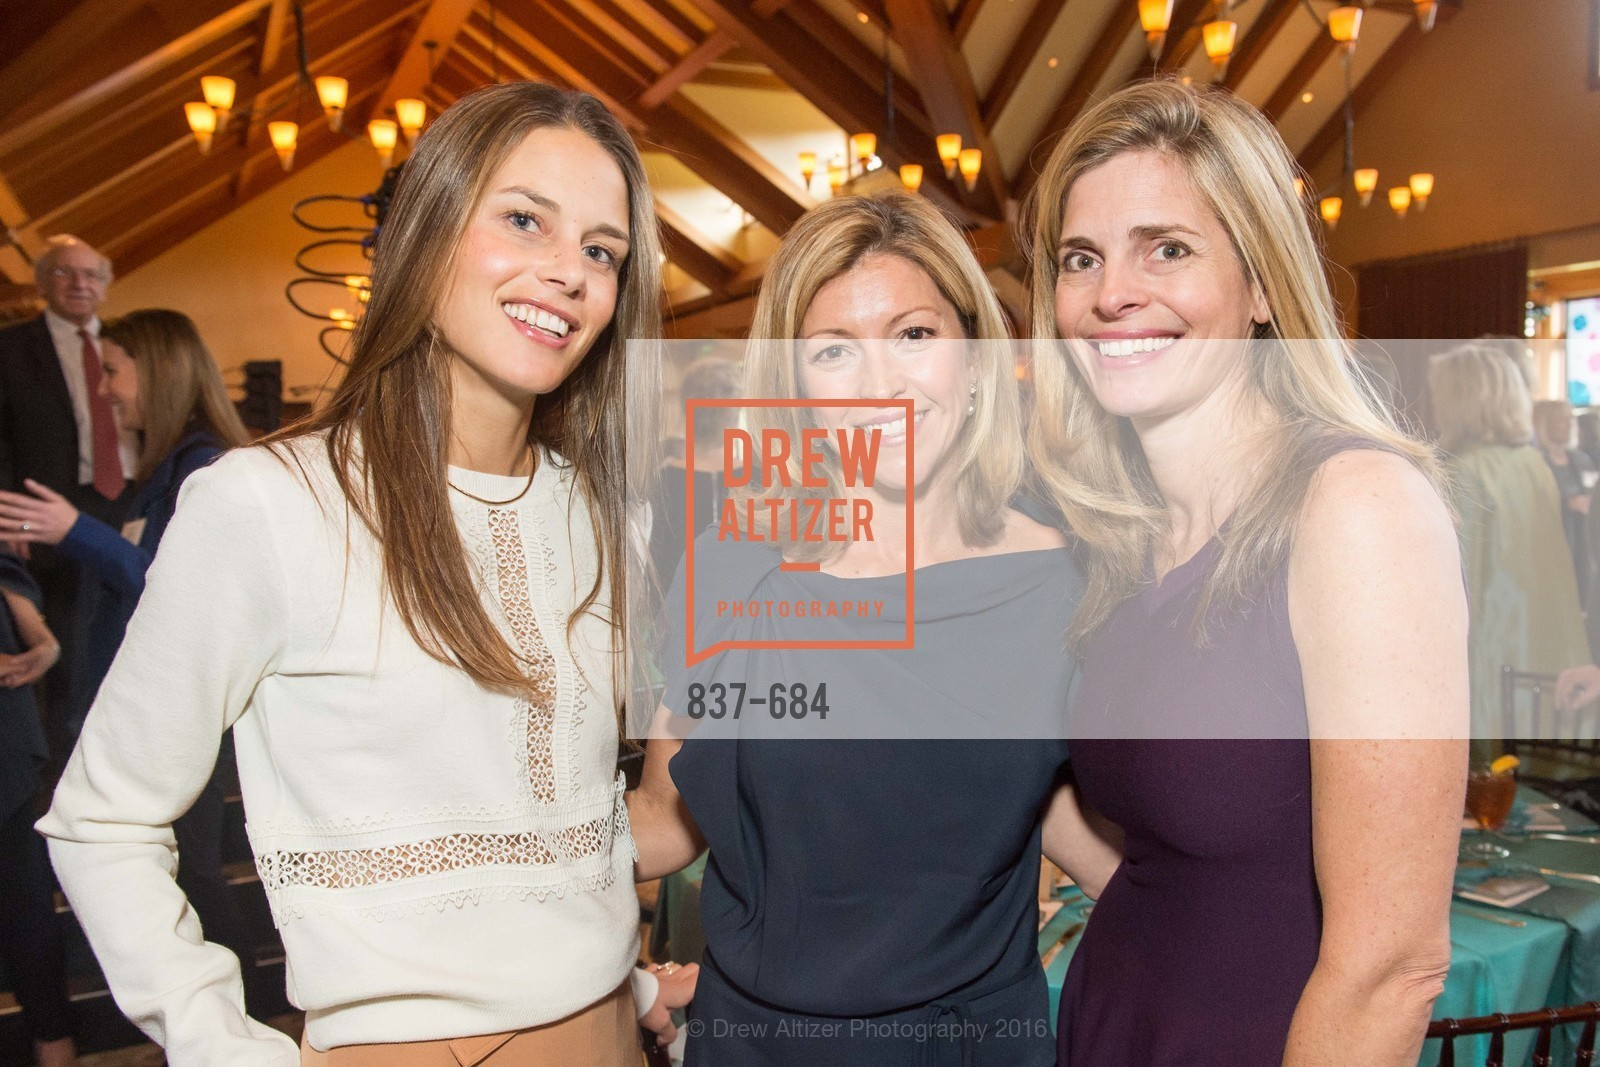 Charlotte Waxman, Abigal Durban, Suzanne Crandall, Under One Umbrella, Sharon Heights Golf and Country Club, January 13th, 2016,Drew Altizer, Drew Altizer Photography, full-service agency, private events, San Francisco photographer, photographer california